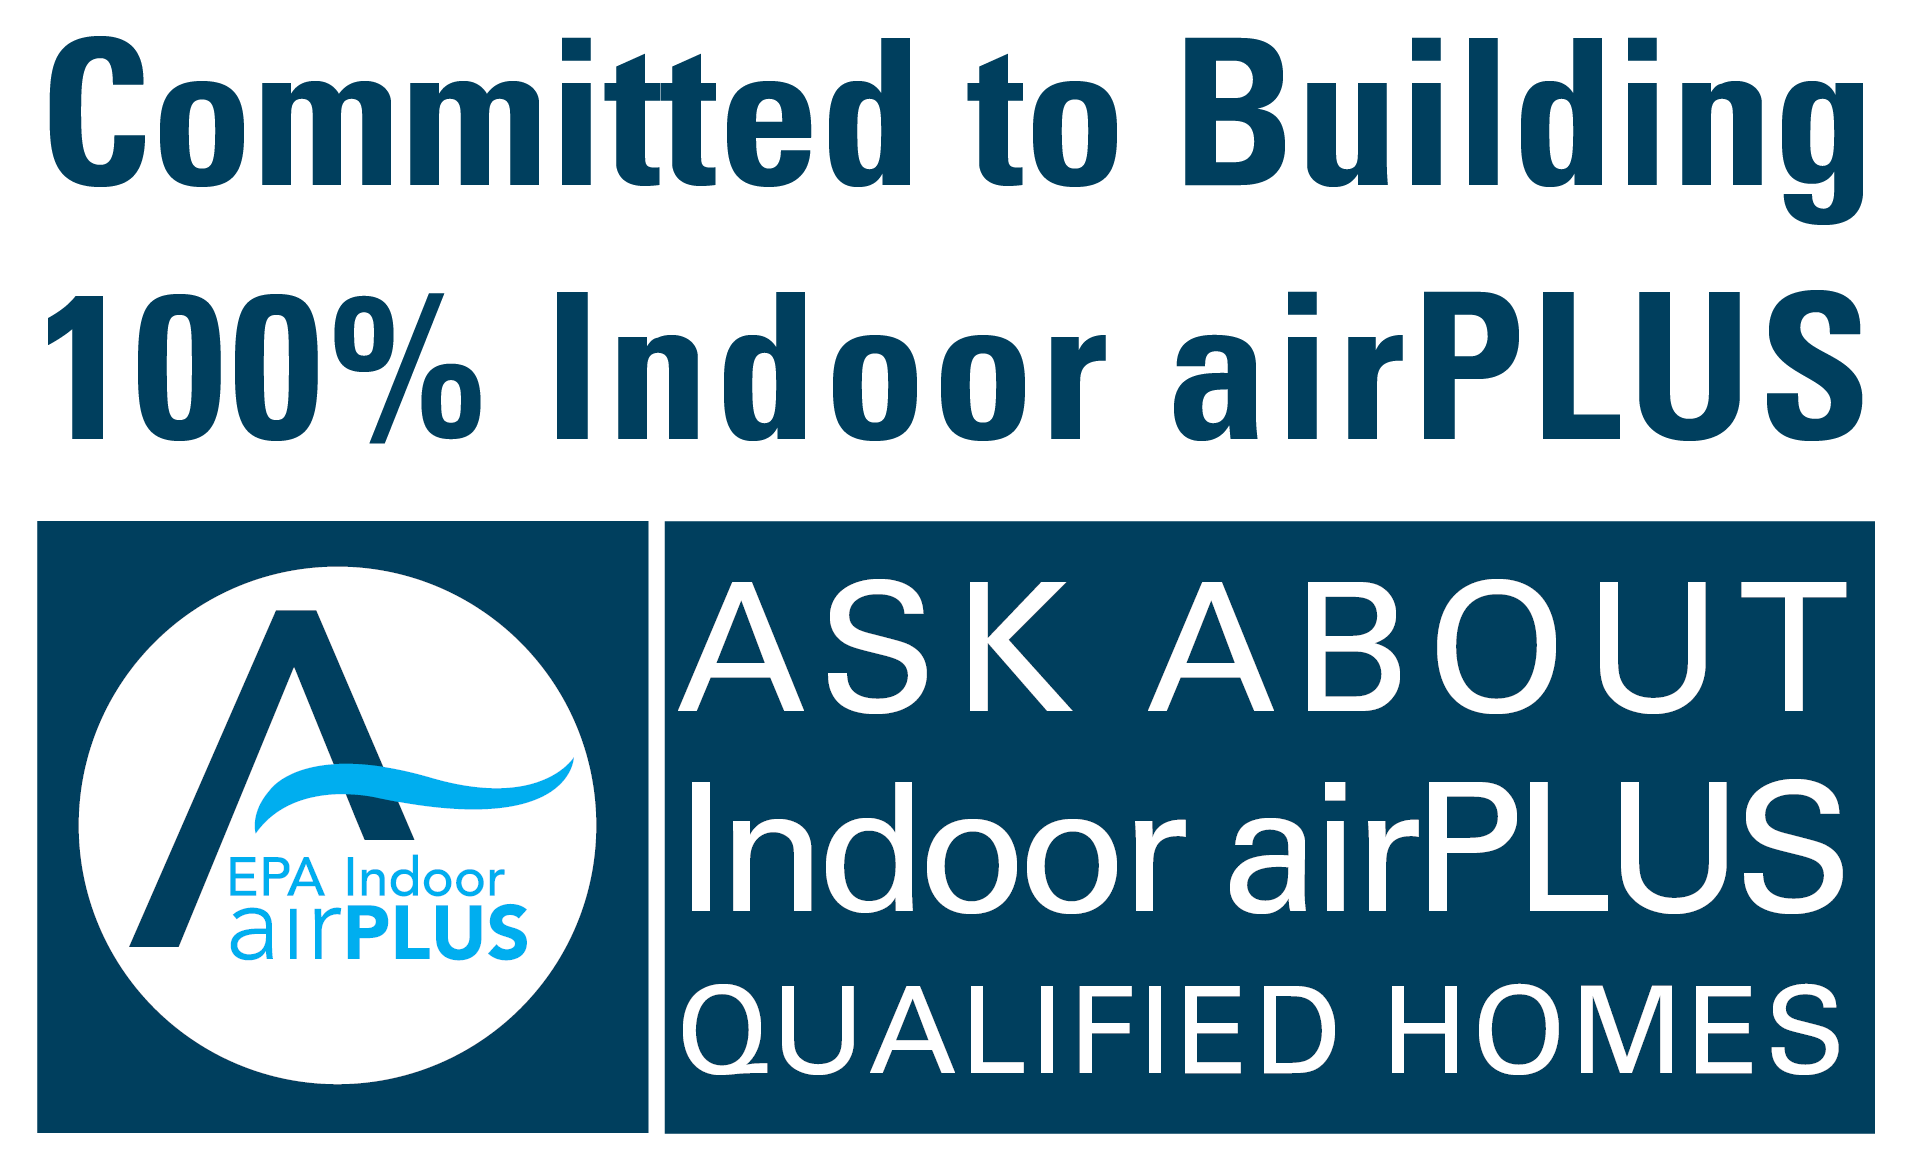 Indoor airPLUS logo